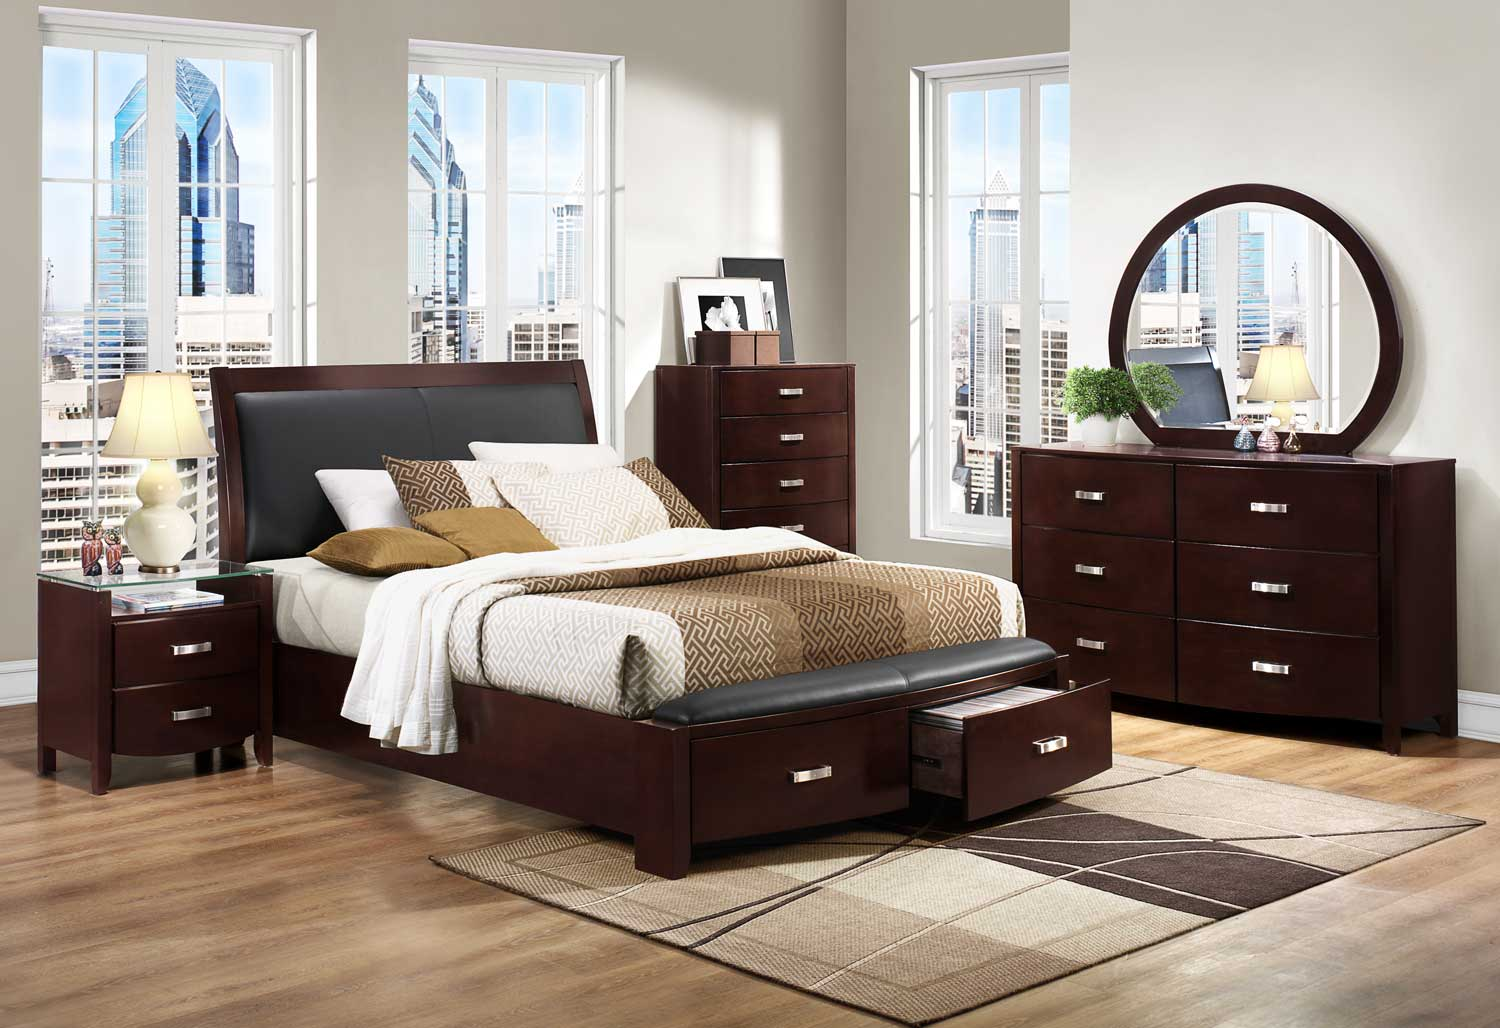 Homelegance lyric platform bedroom set dark espresso for New bedroom furniture